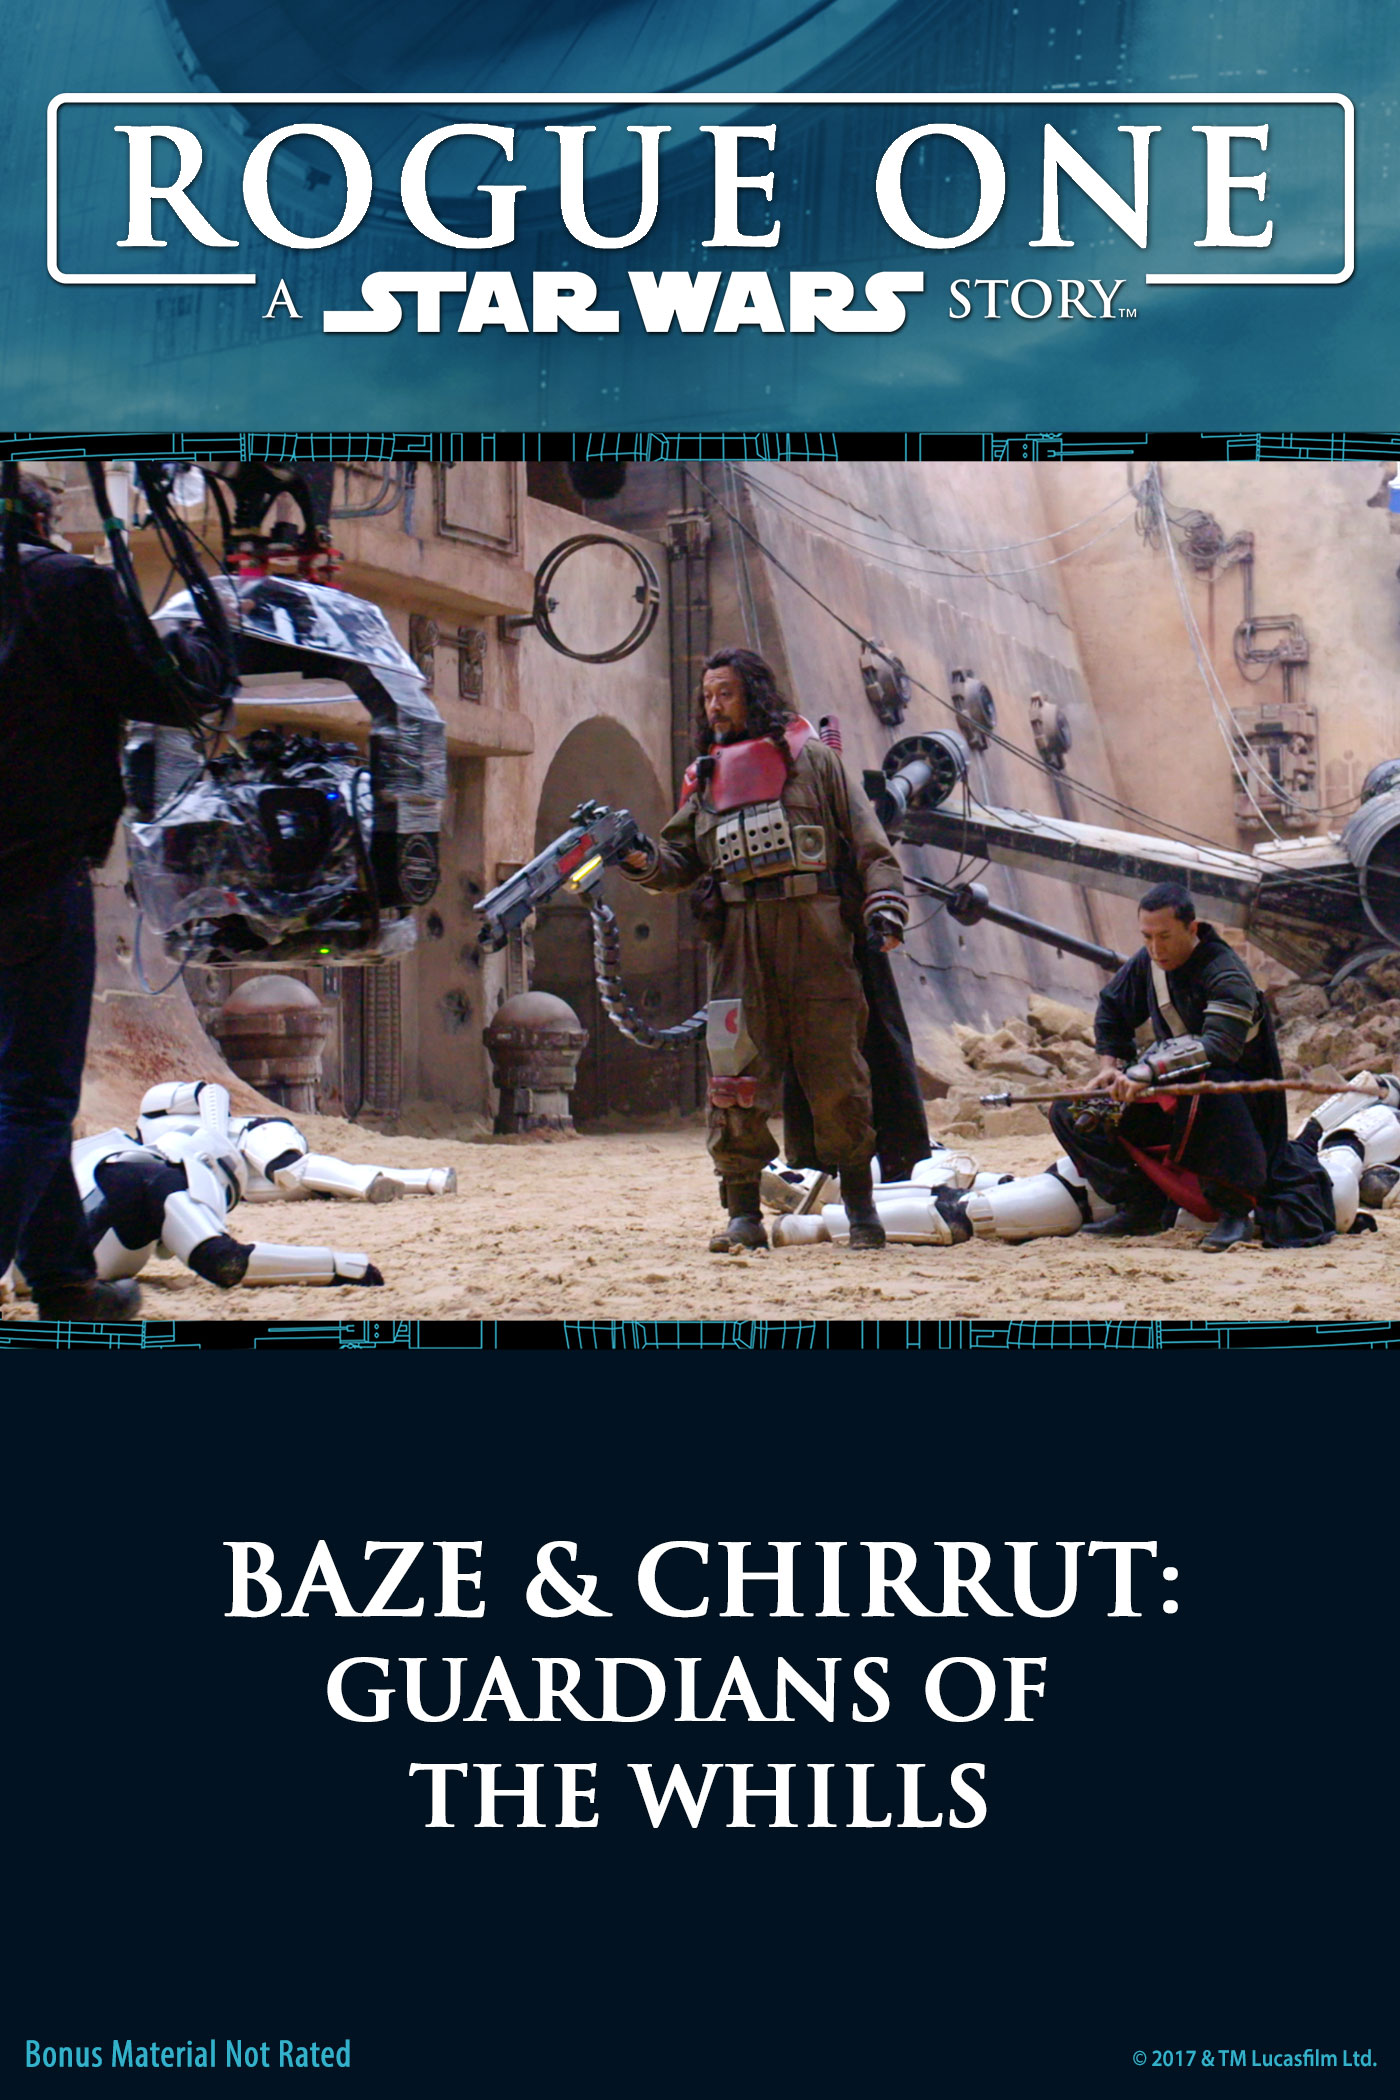 Baze & Chirrut: Guardians Of The Whills